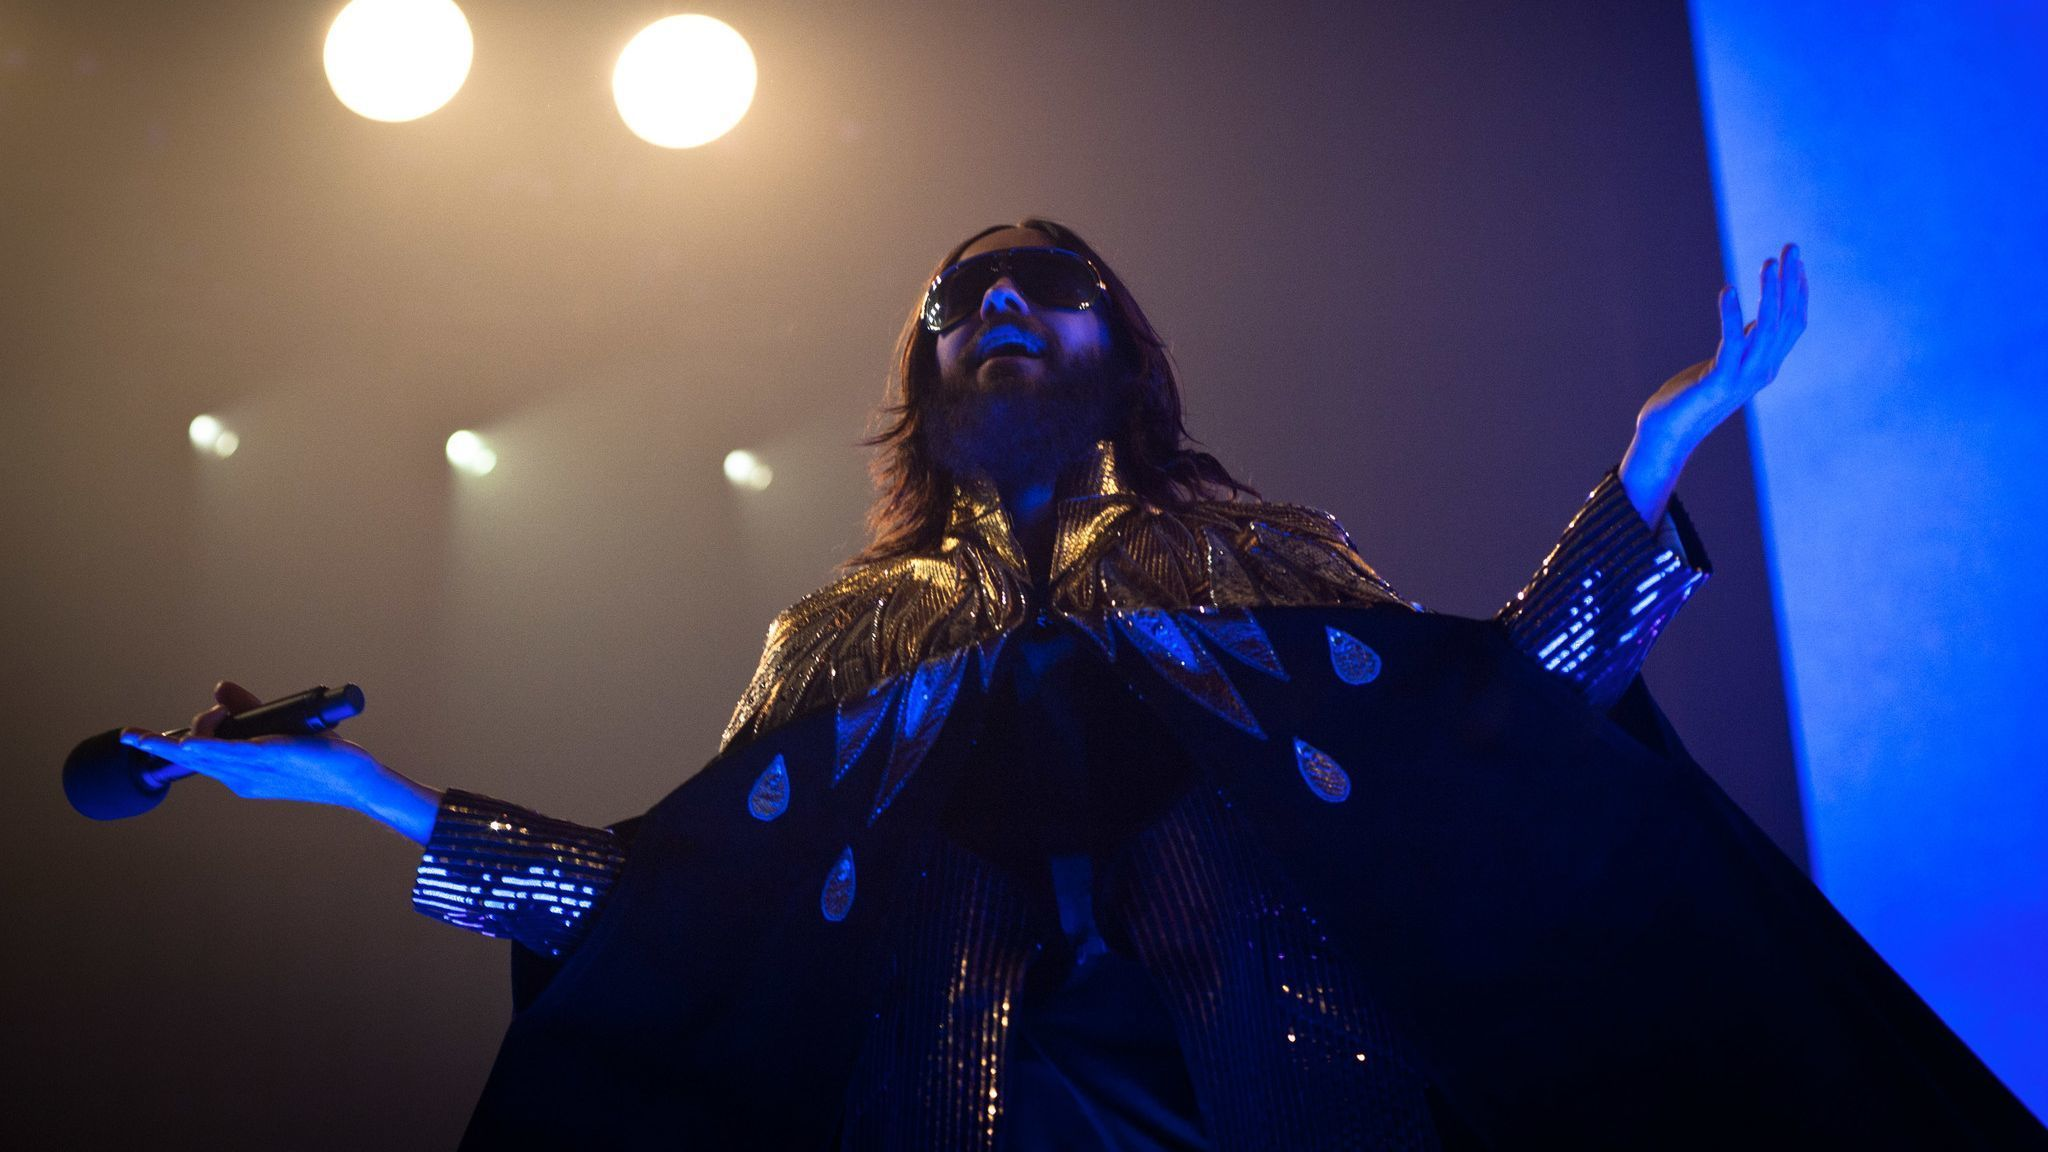 Jared Leto performs during a Thirty Seconds to Mars in concert in Rome.